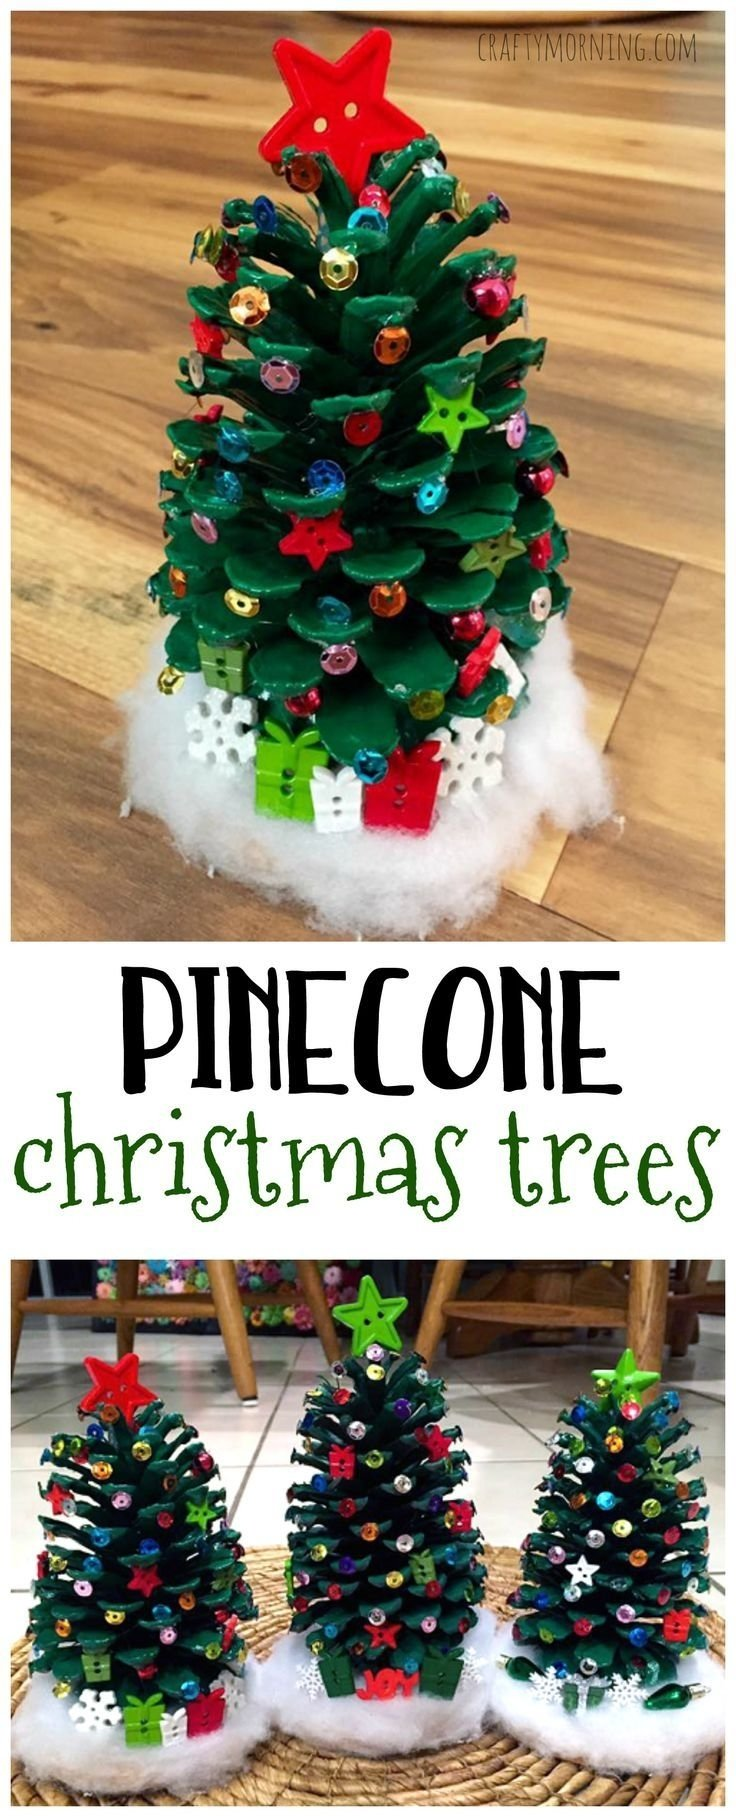 10 Most Popular Homemade Christmas Ornament Ideas For Kids 2809 best christmas crafts kids images on pinterest christmas 1 2020